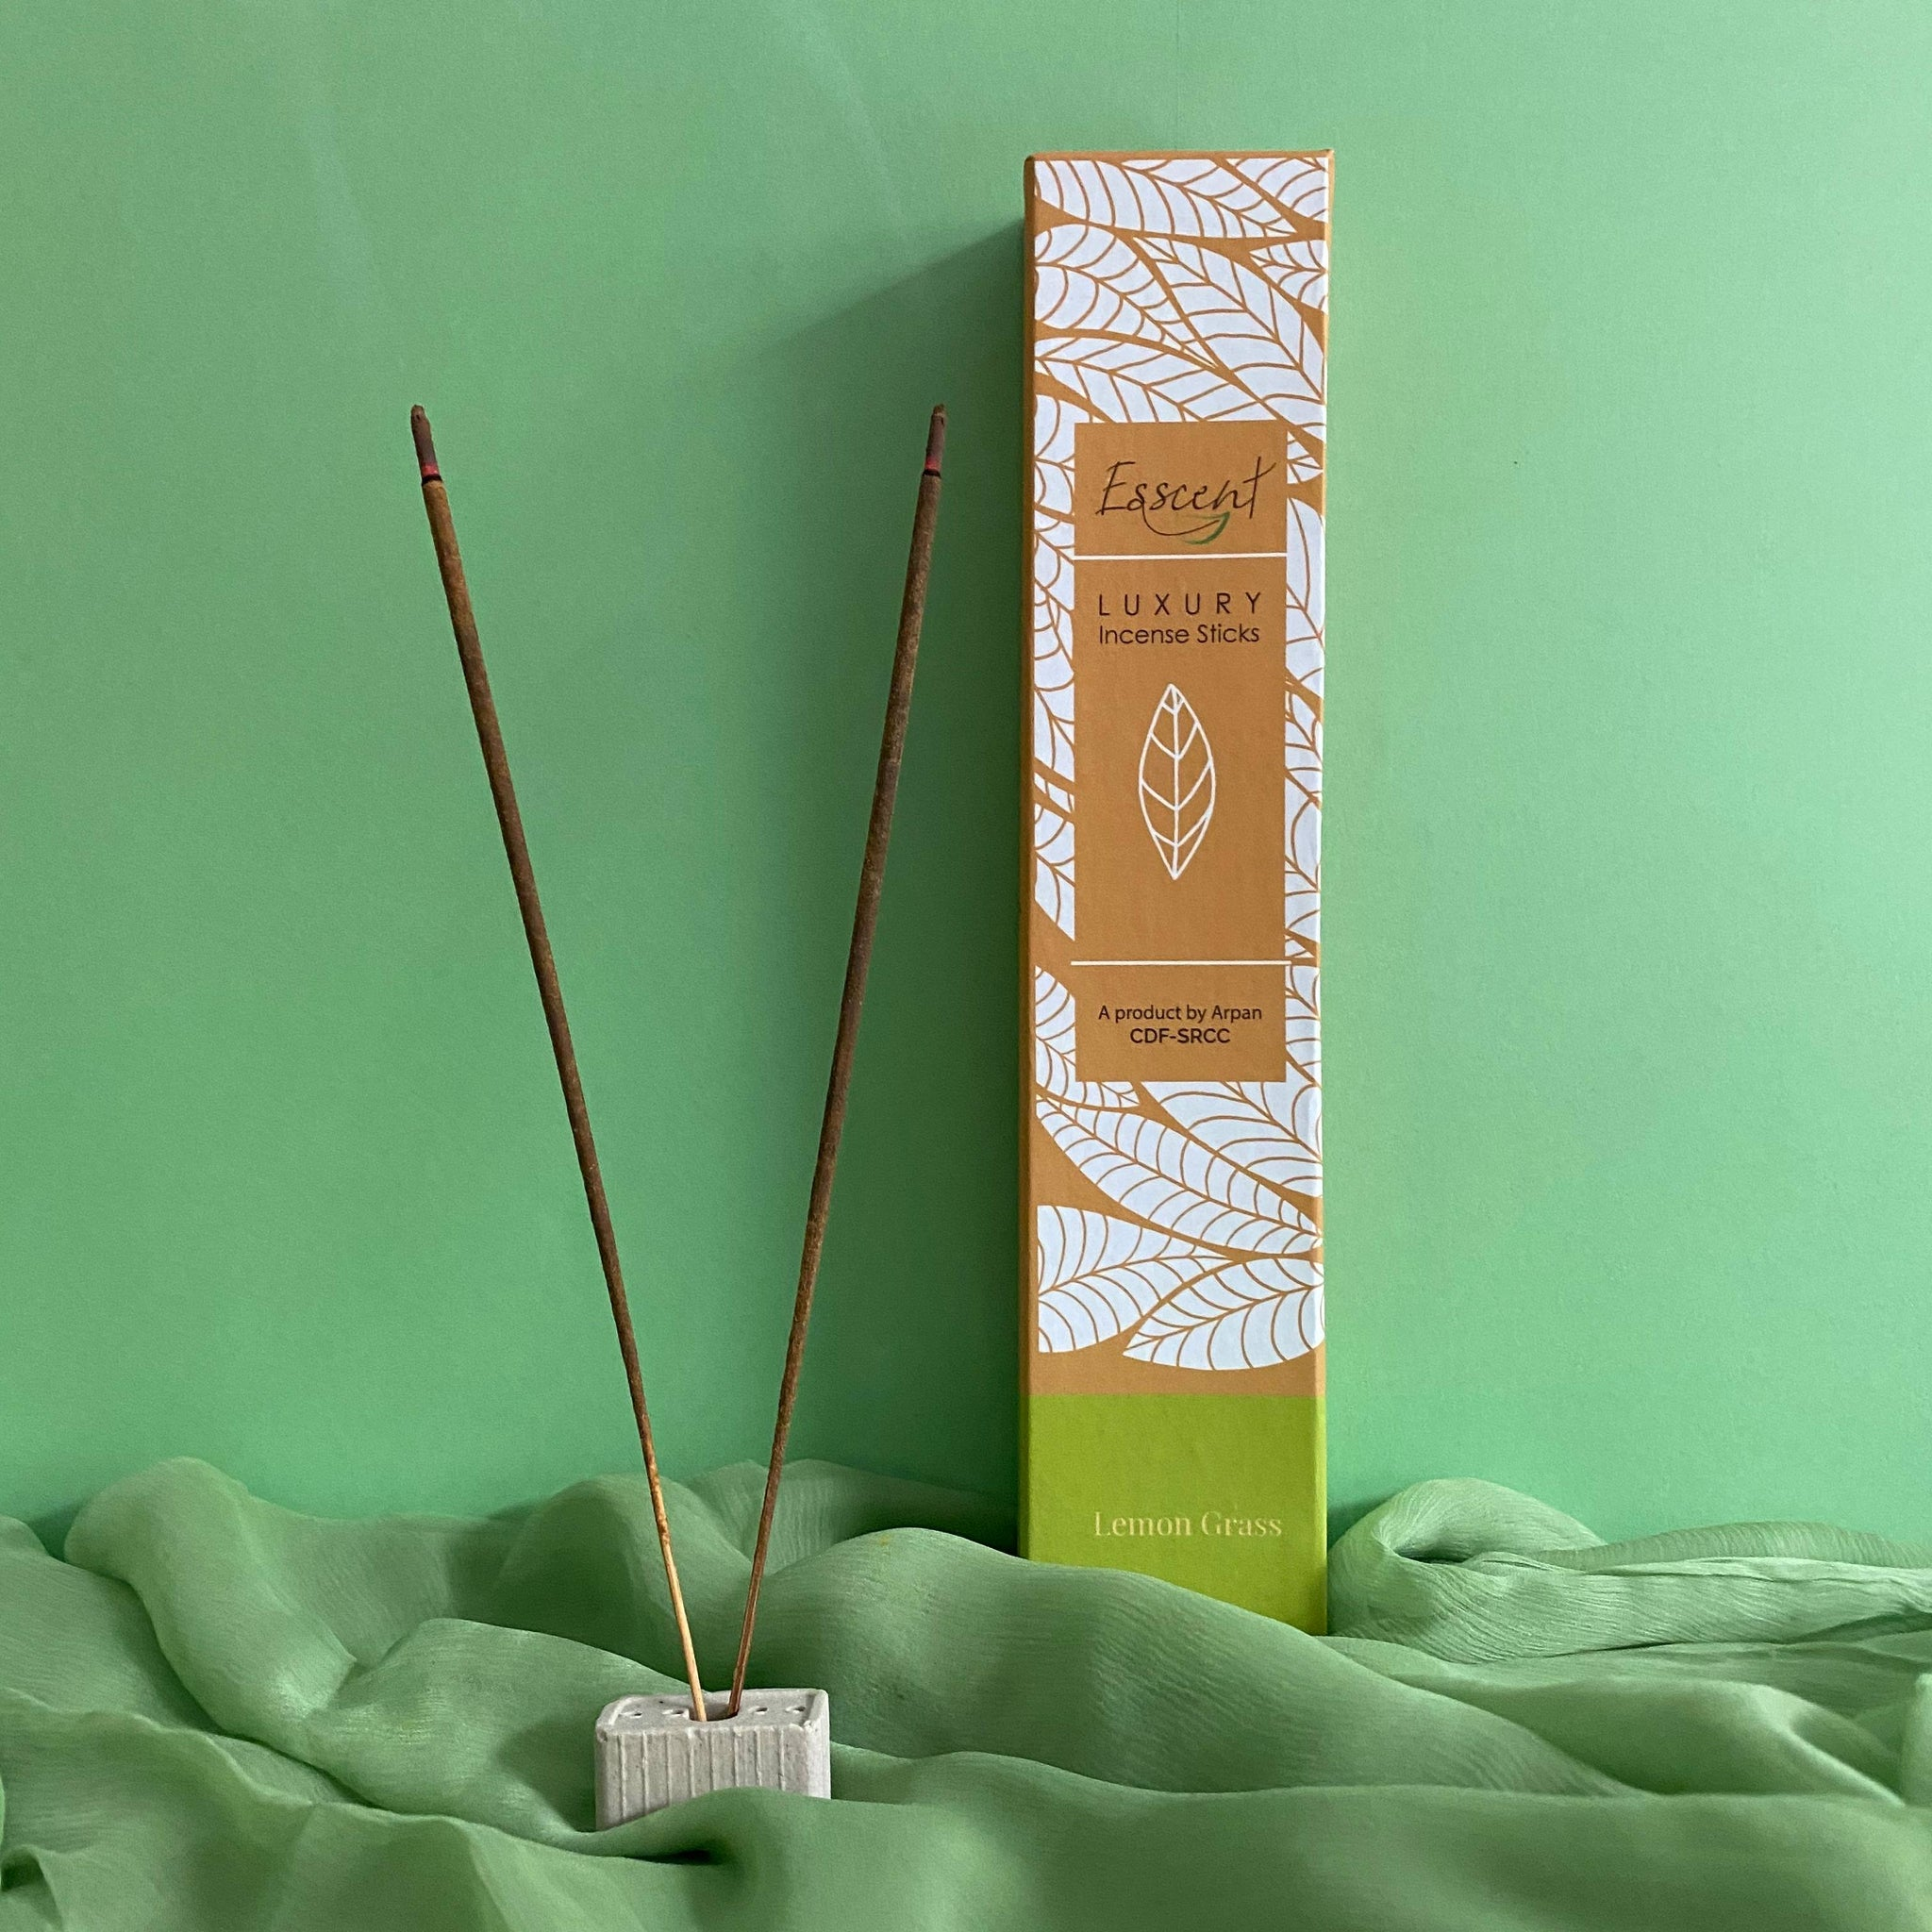 Esscent- Lemongrass Premium Flower-based Incense Sticks